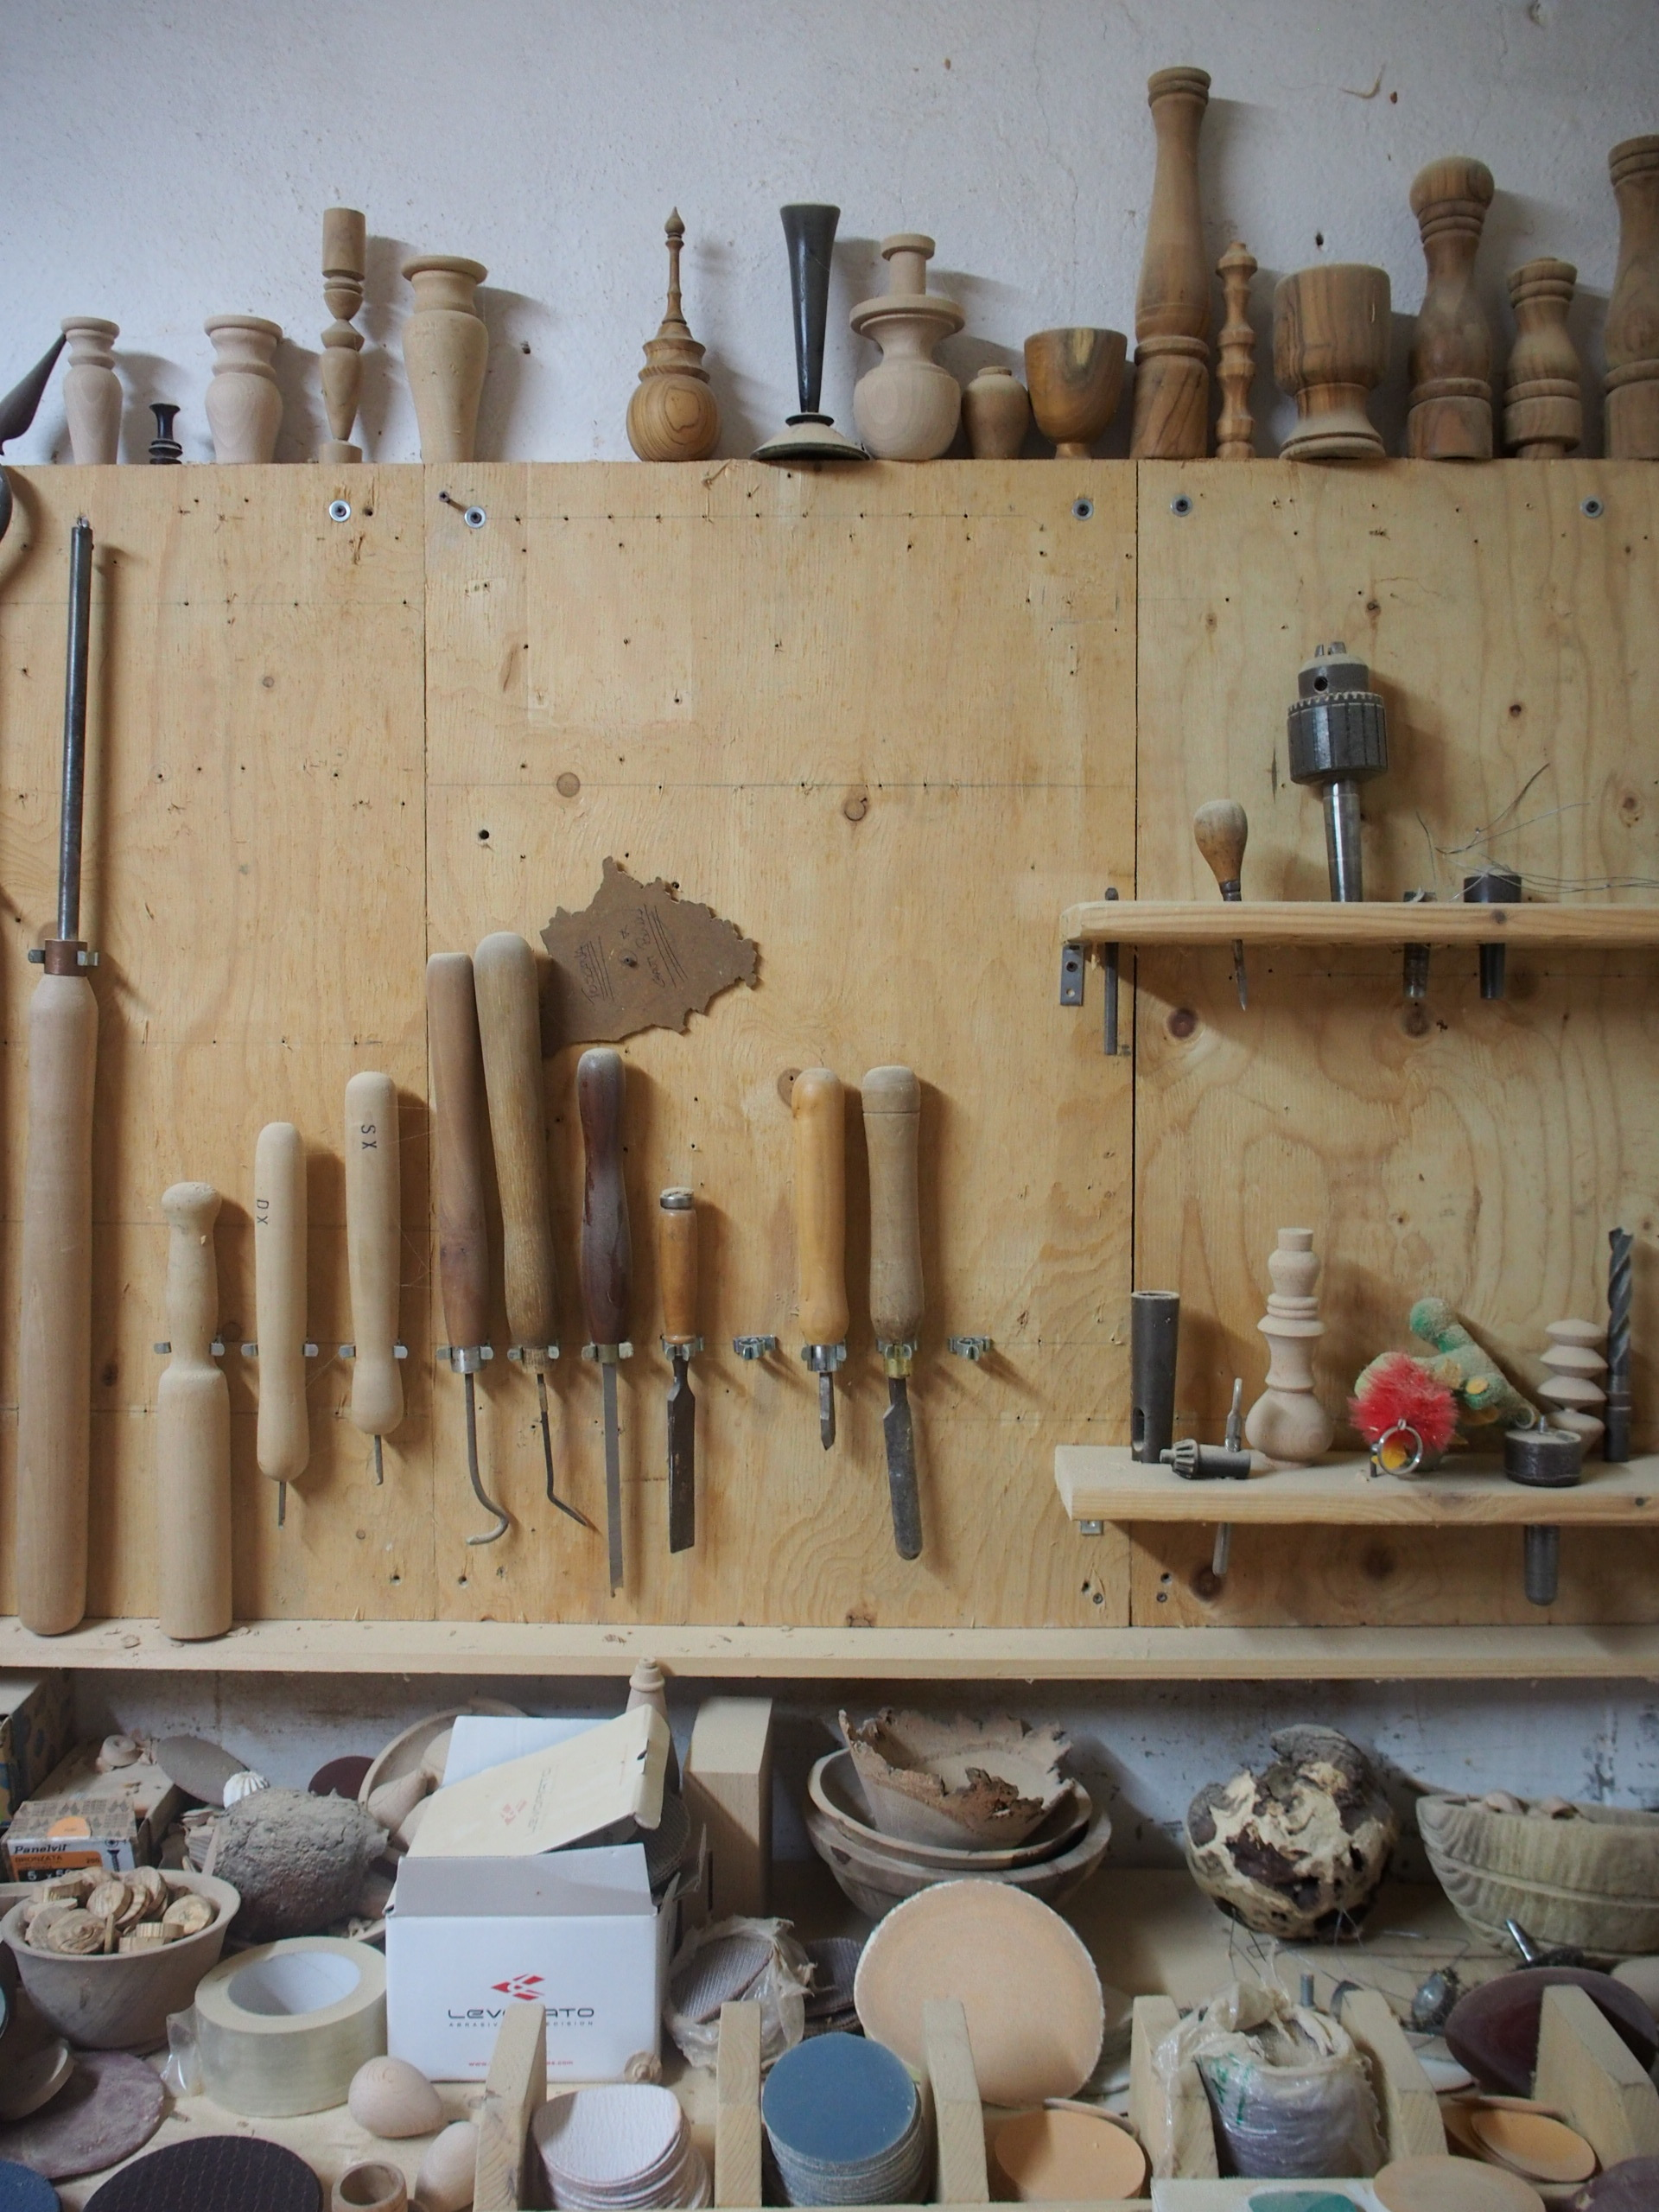 Giorgio Romani´s wood carving tools.